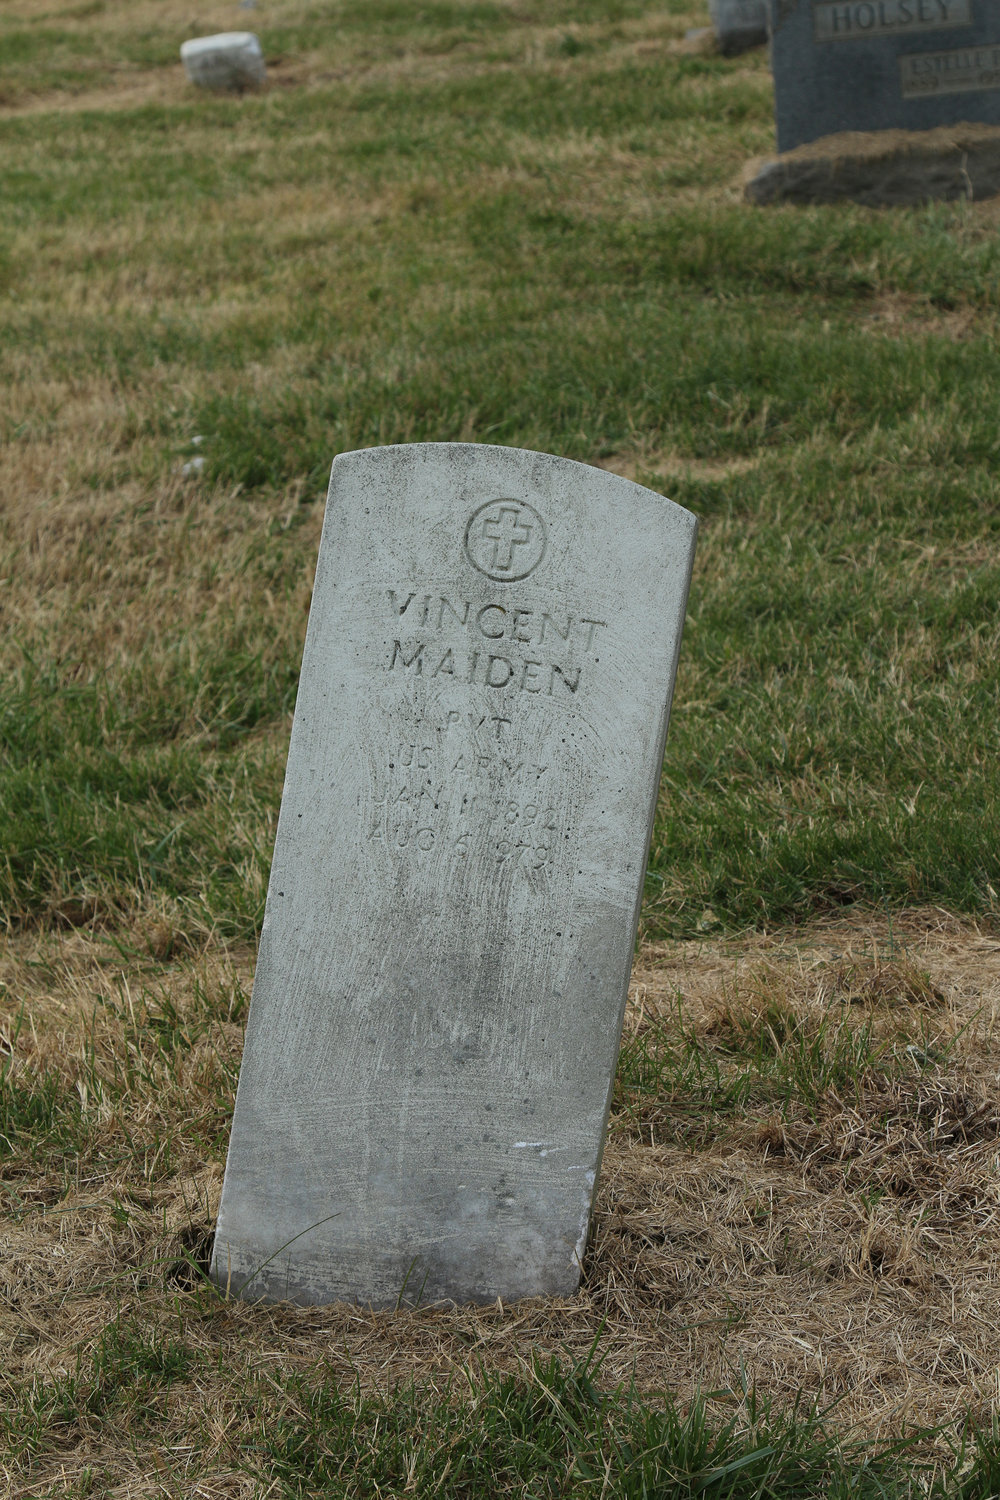 Pvt. Vincent Maiden